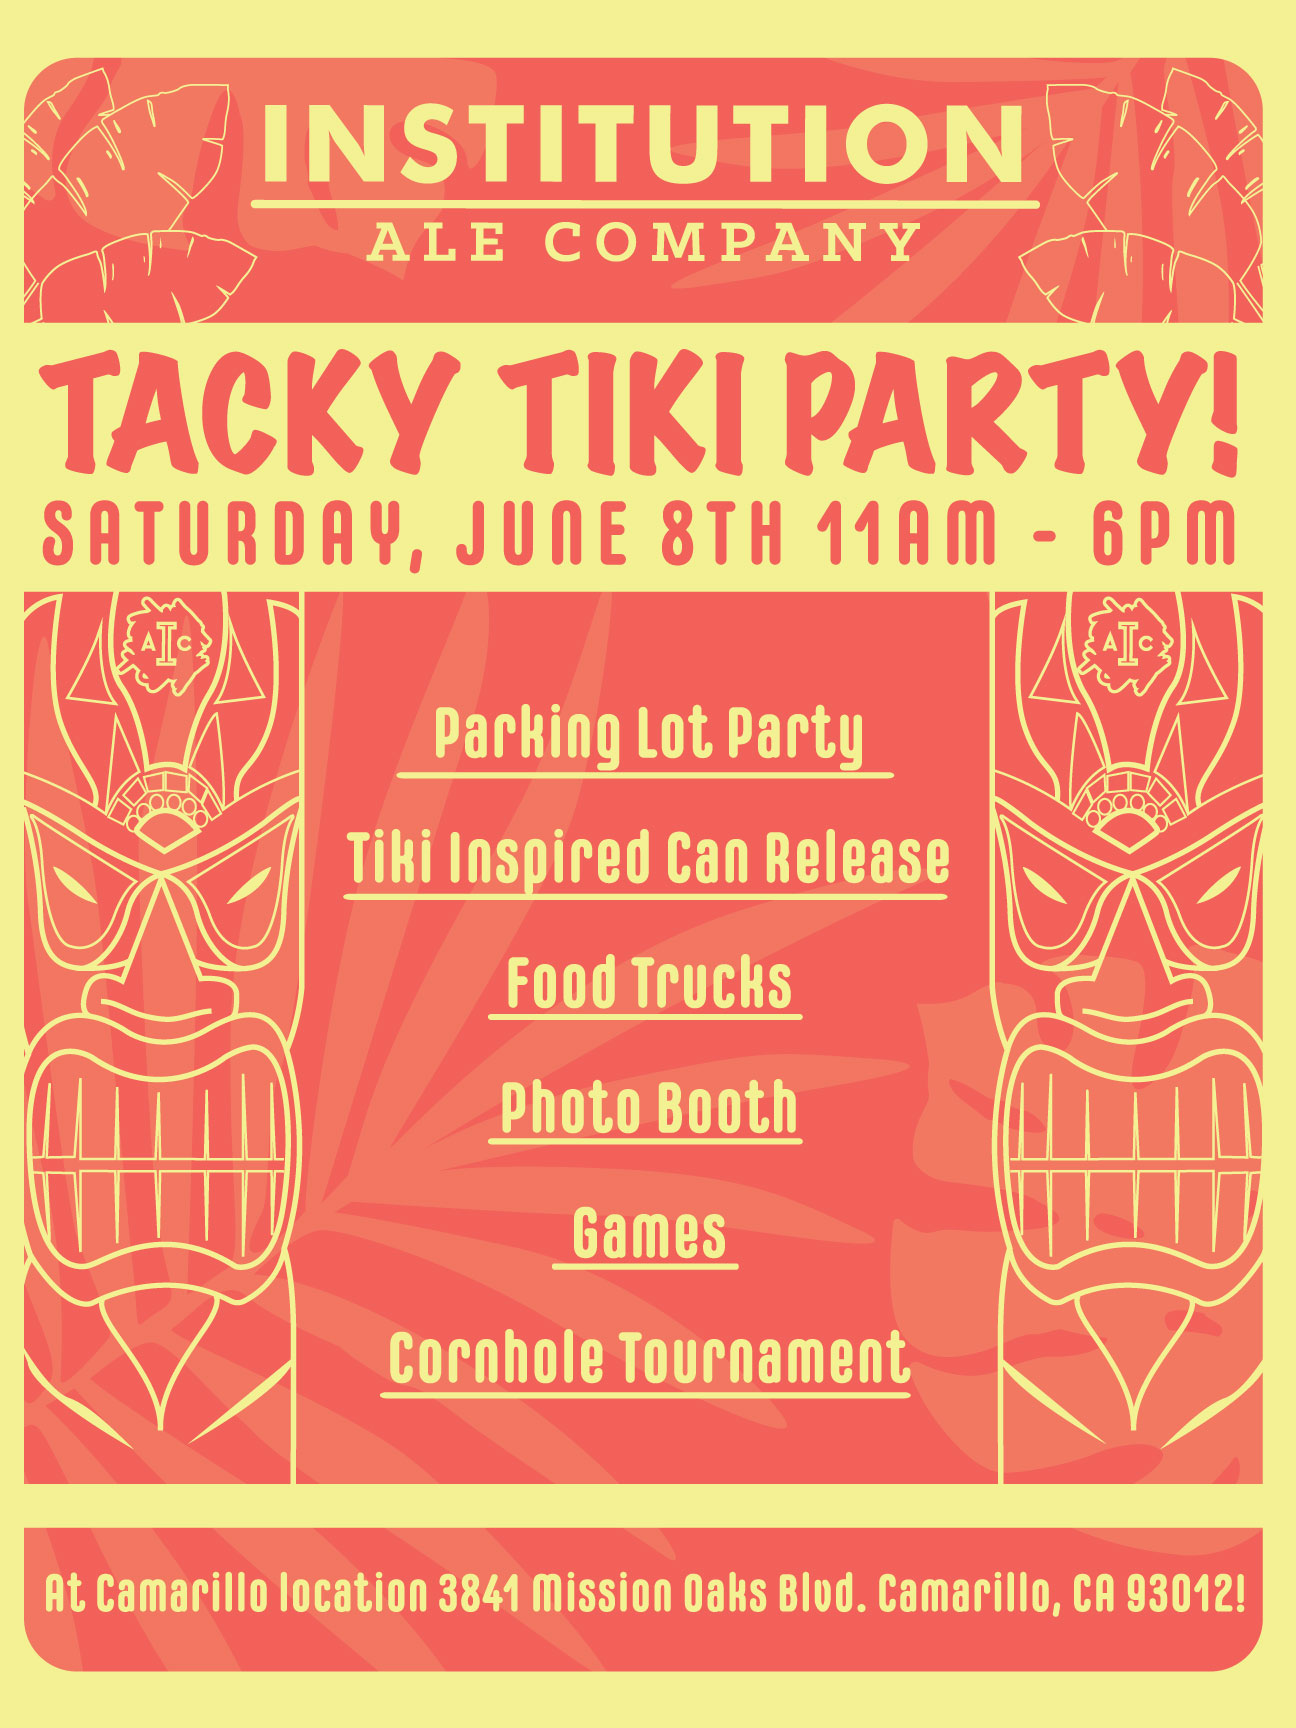 Tiki_Party_flyer_alt_2019.jpg